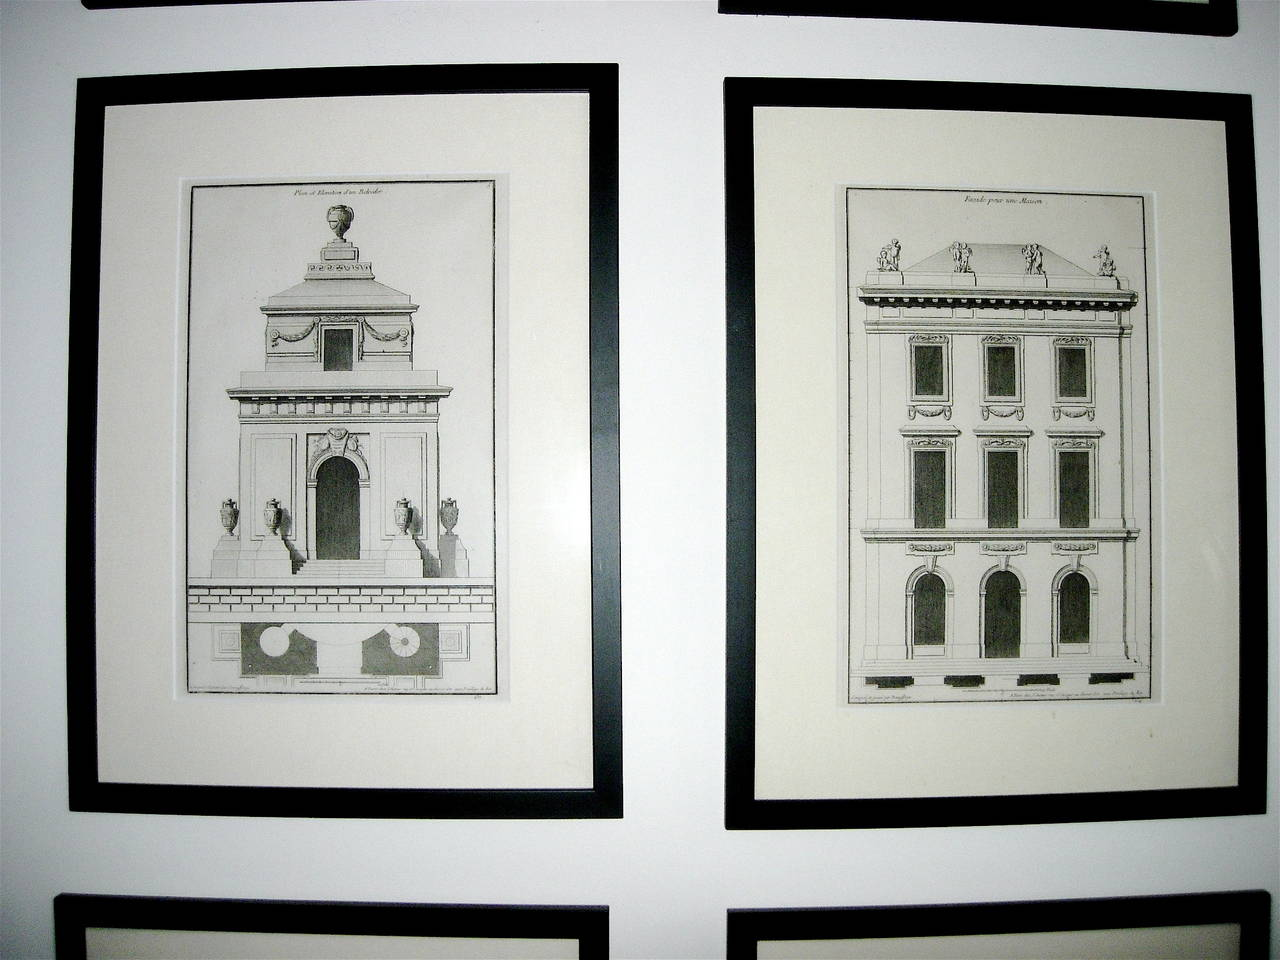 French Extensive Collection of 18th Century Architectural Engravings, Priced Per Piece. For Sale